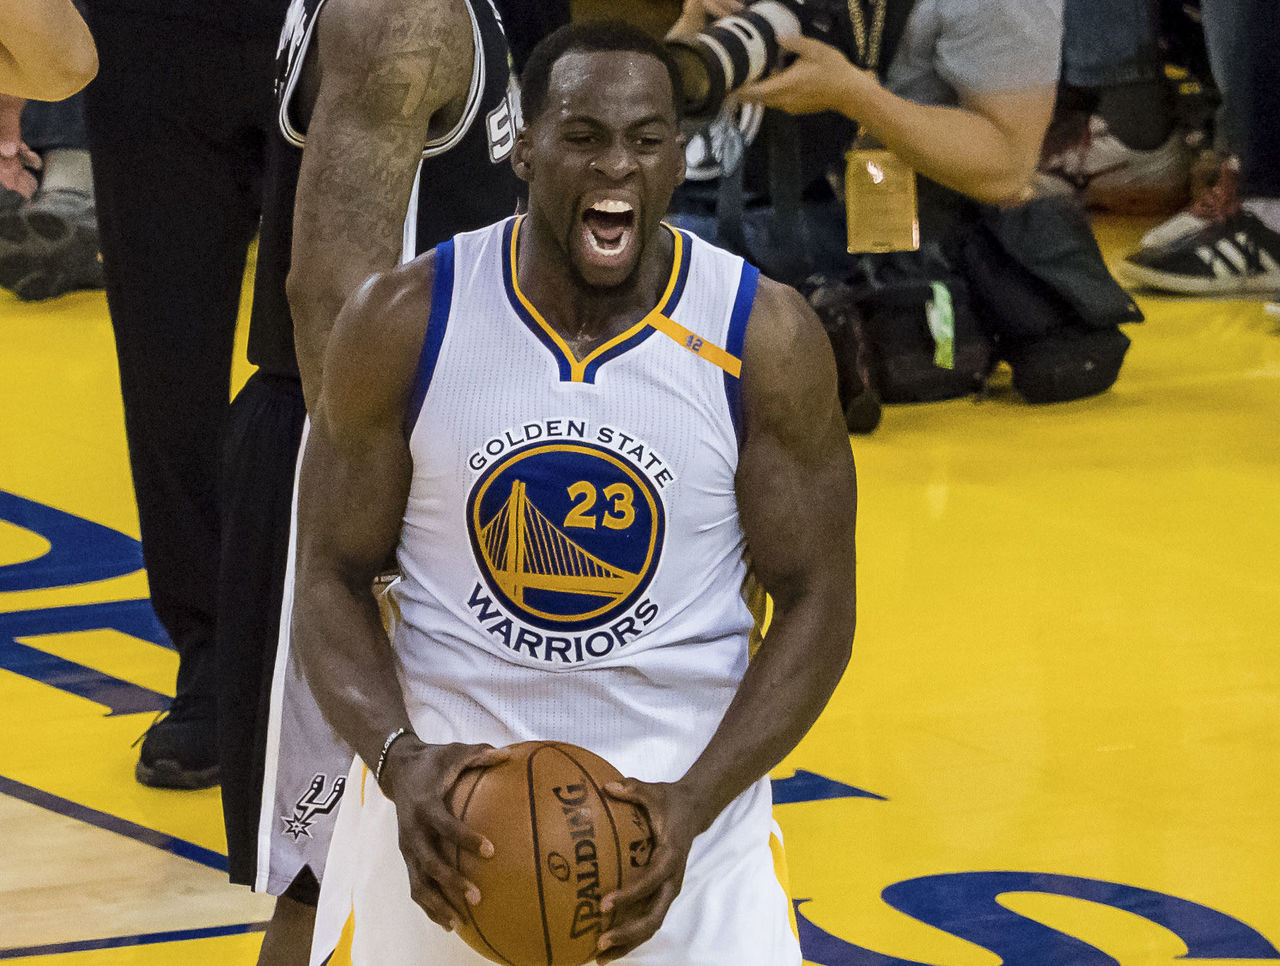 Cropped 2017 05 14t231503z 1806461452 nocid rtrmadp 3 nba playoffs san antonio spurs at golden state warriors